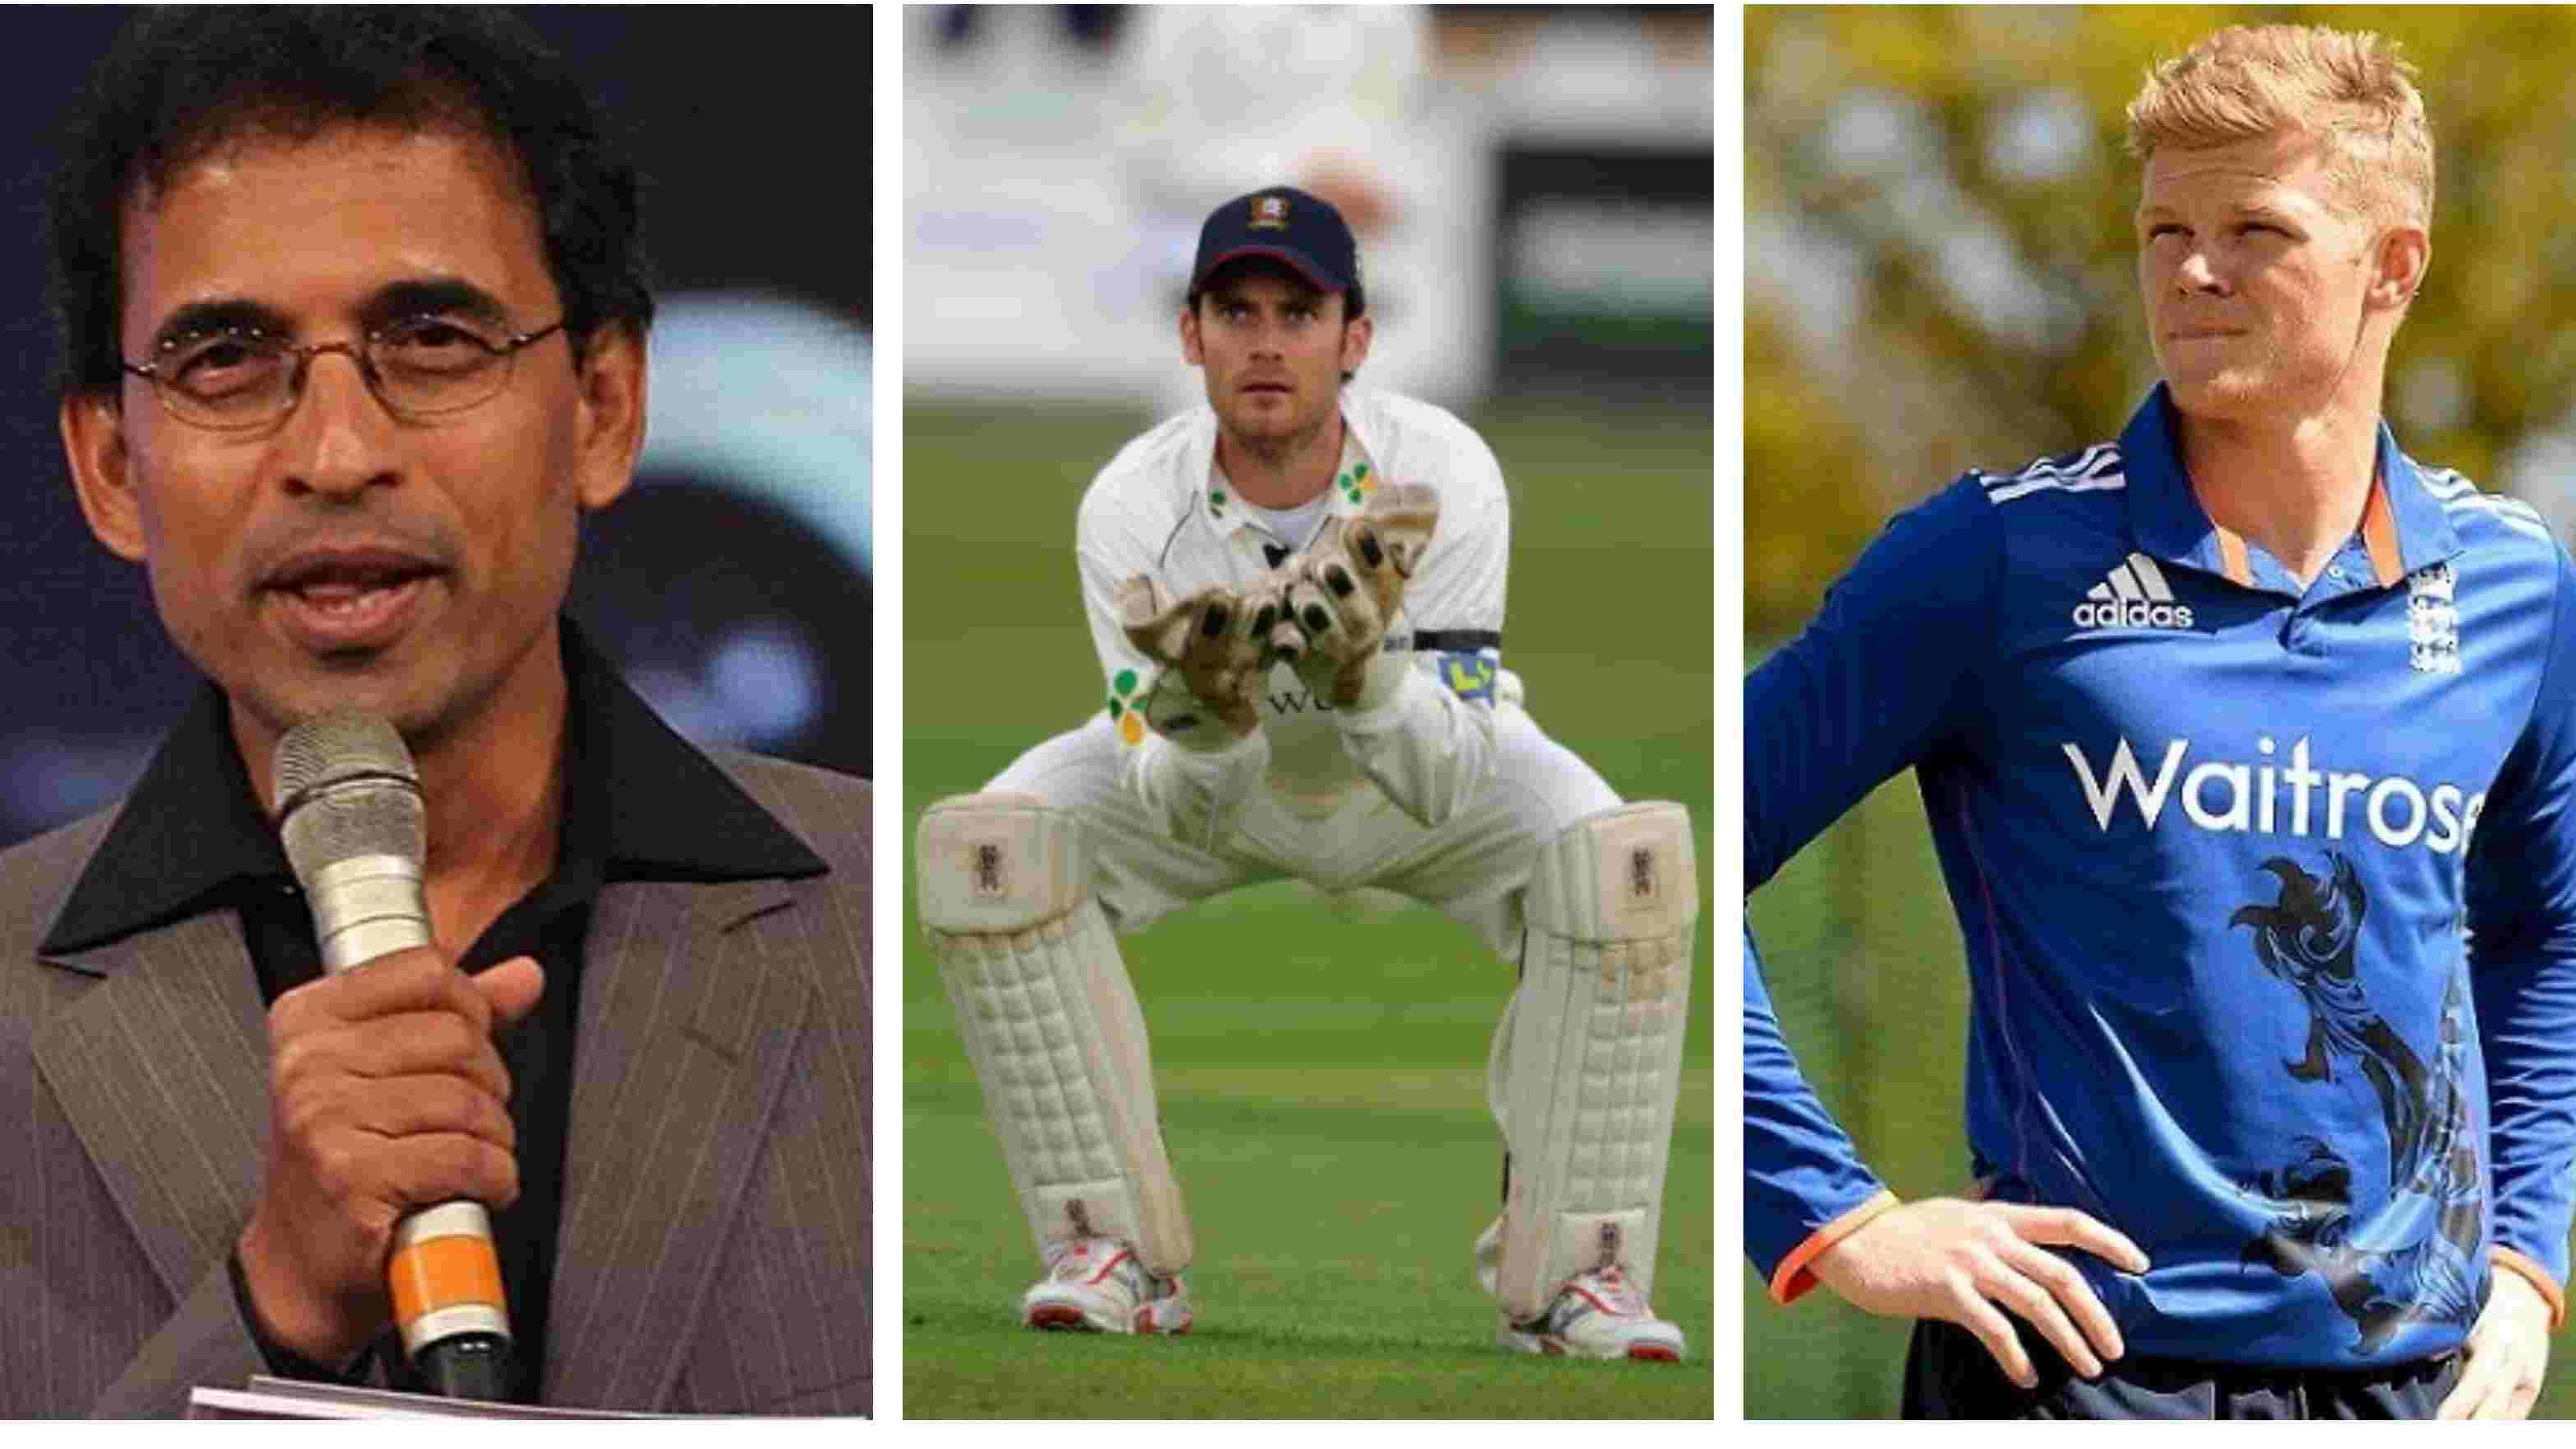 Harsha Bhogle raises doubts over James Foster's keeping skills, Sam Billings disagrees